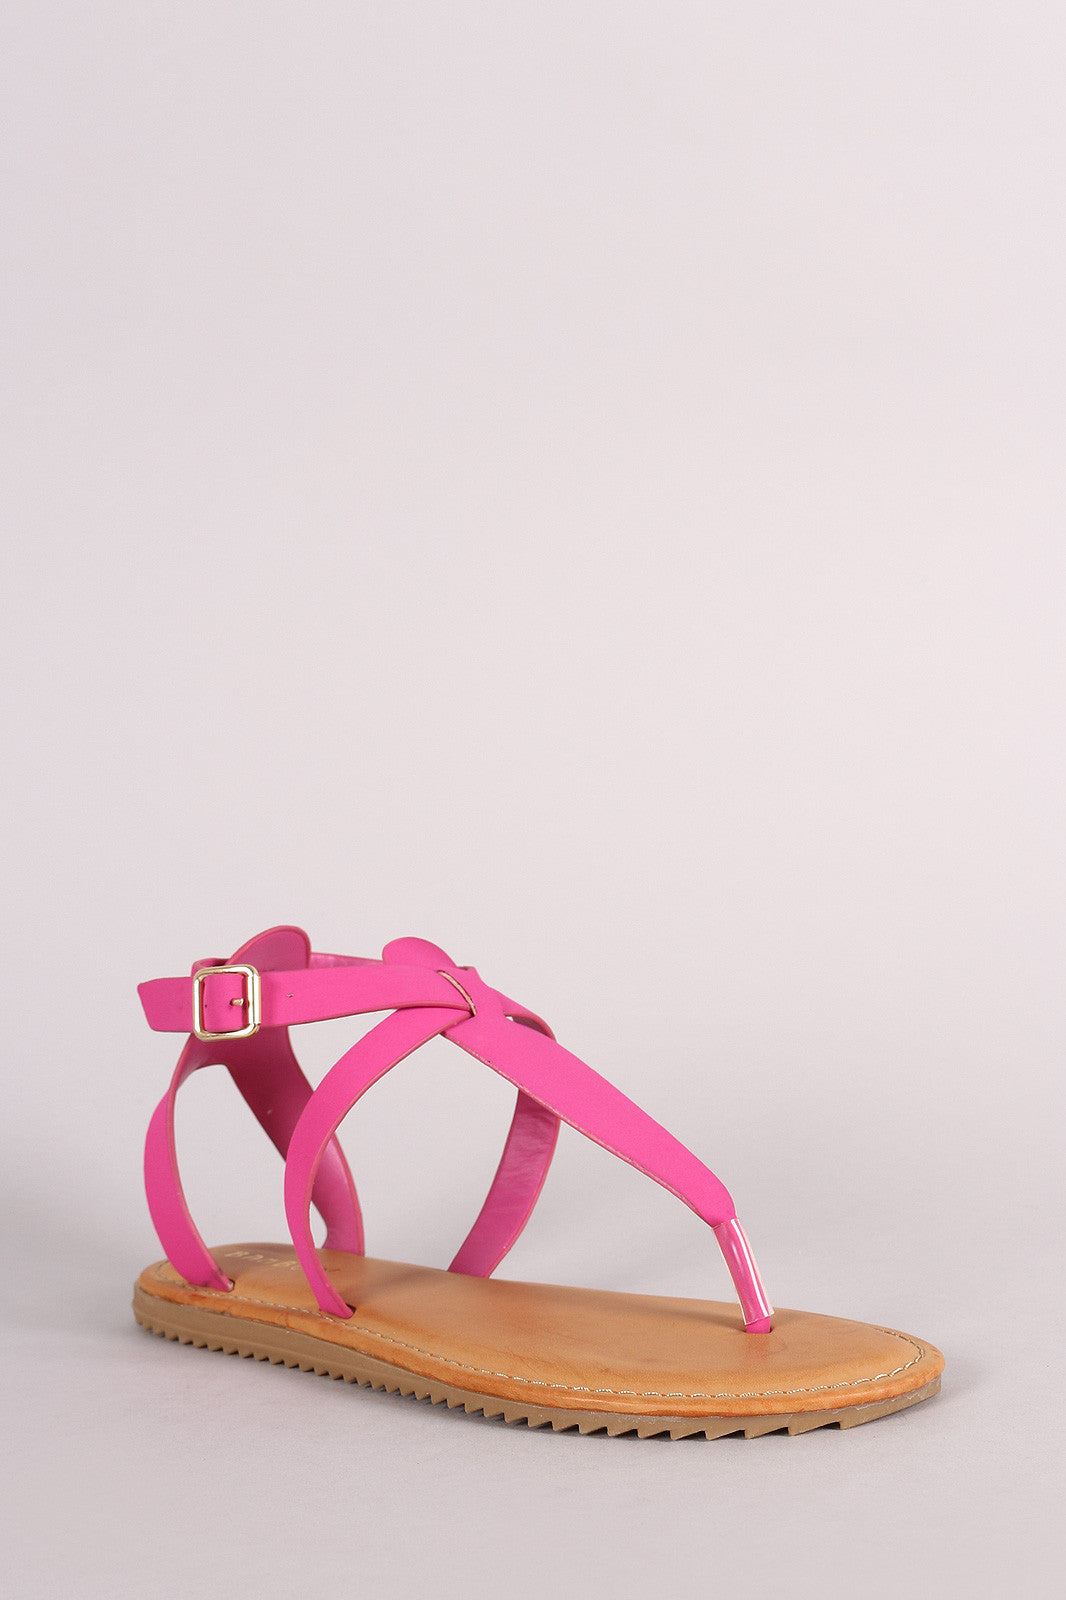 Bamboo Nubuck Lug Sole Crisscross Ankle Strap Thong Flat Sandal - Thick 'N' Curvy Shop - 2